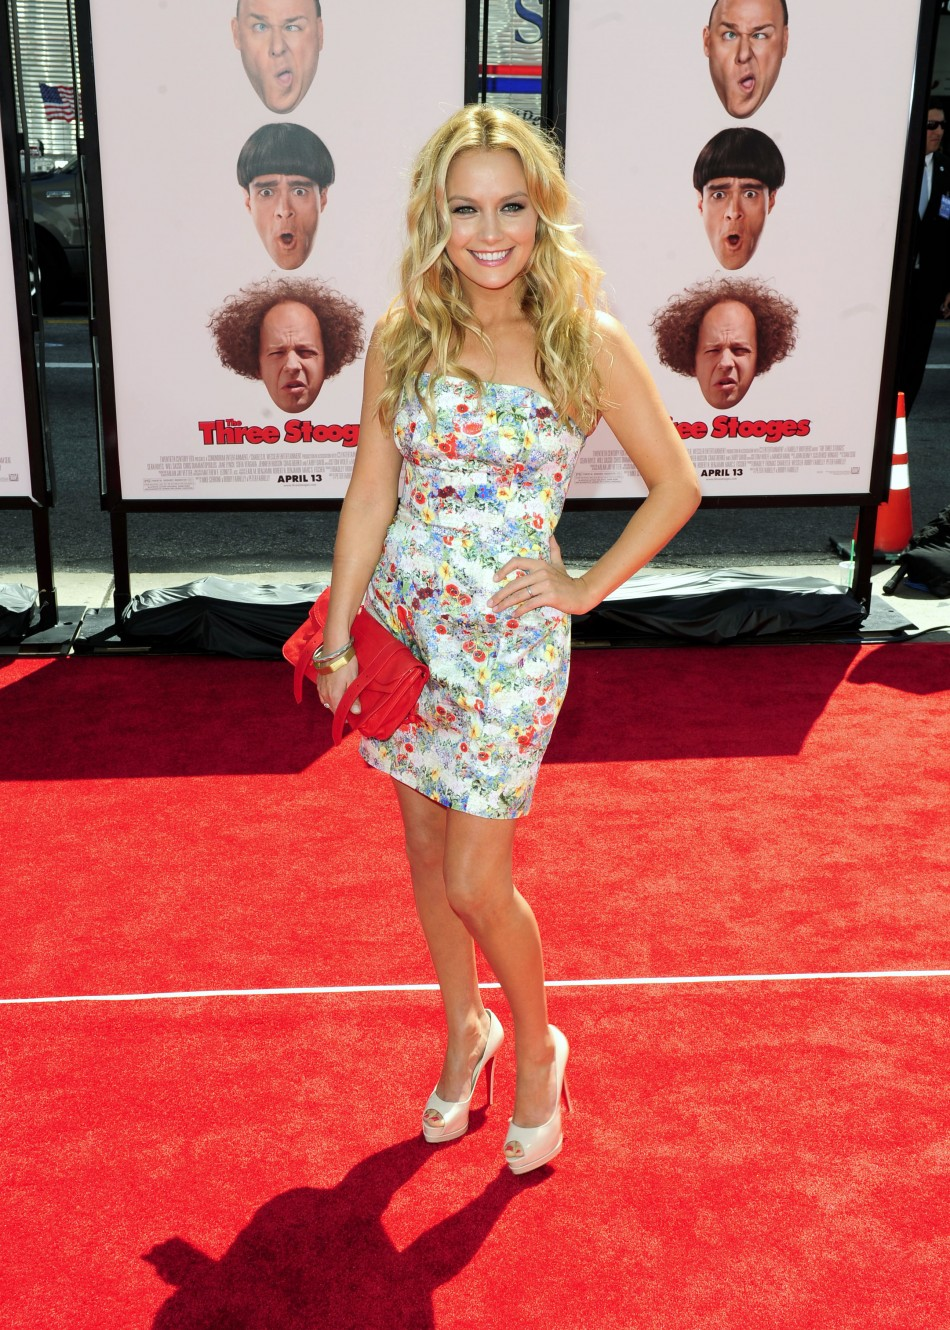 Actress Becki Newton arrives at the Hollywood premiere of quotThe Three Stooges The Moviequot in Los Angeles, California